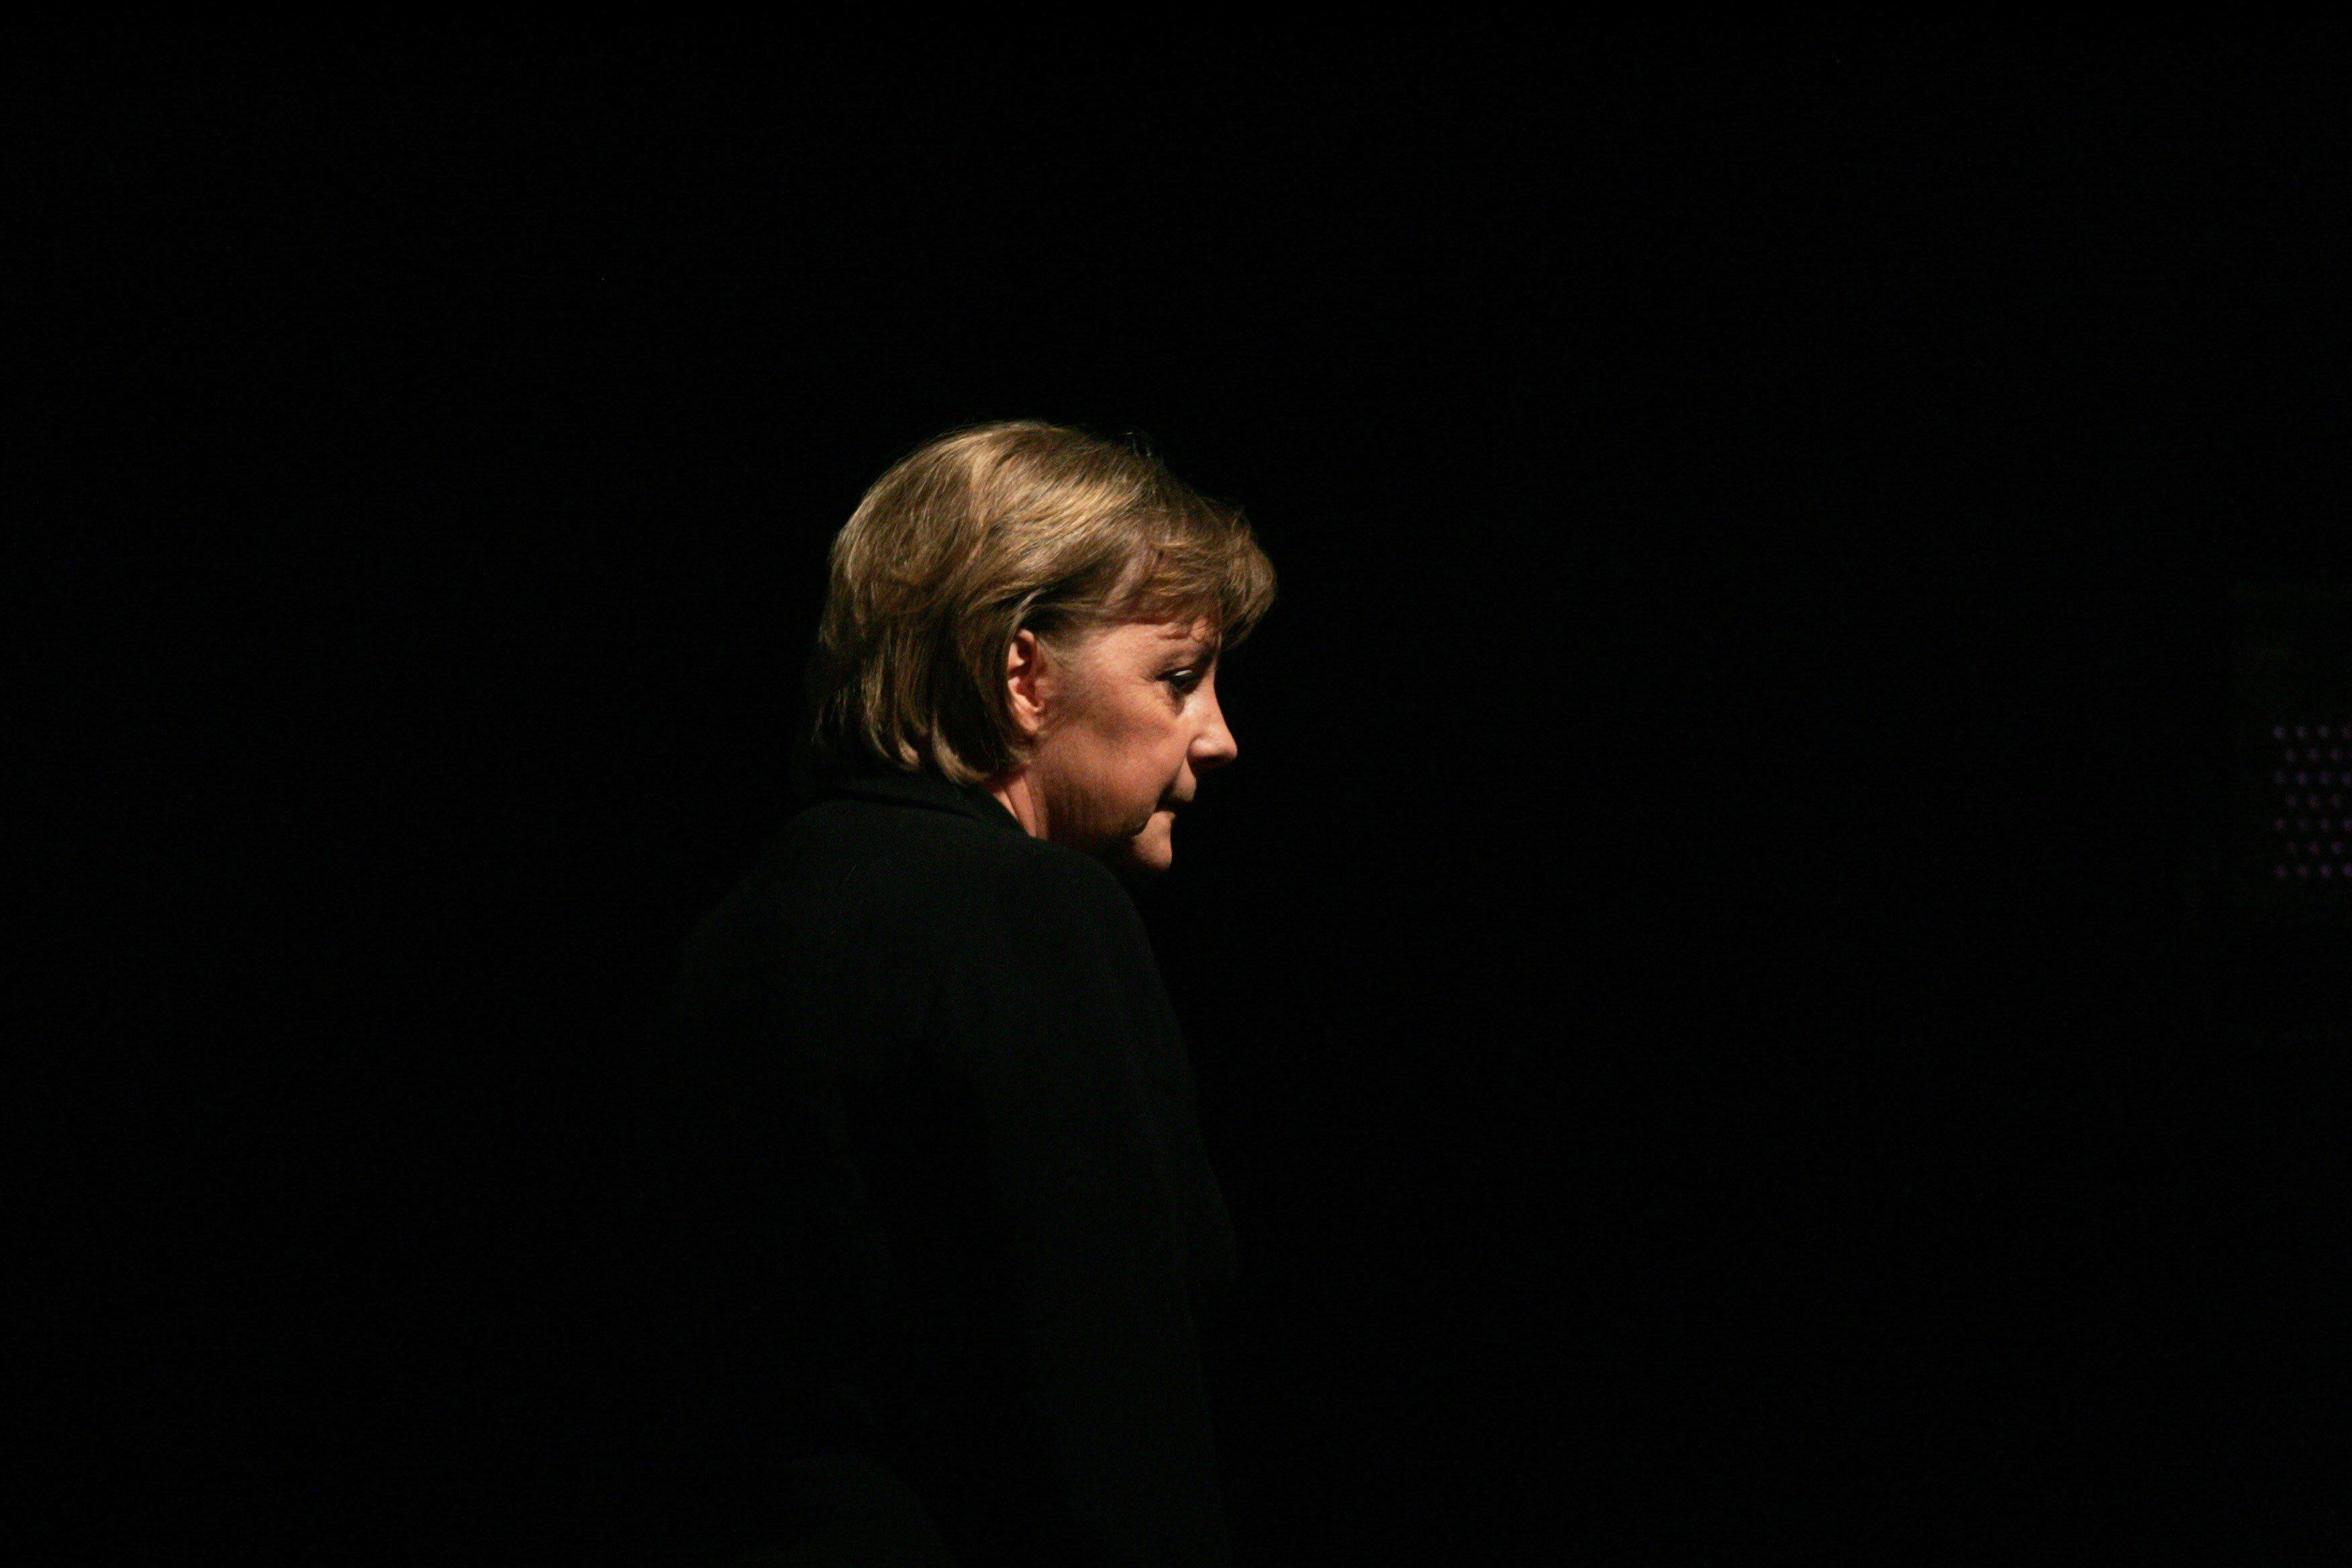 GERMANY-POLITICS-MERKEL-10YEARS-FILES